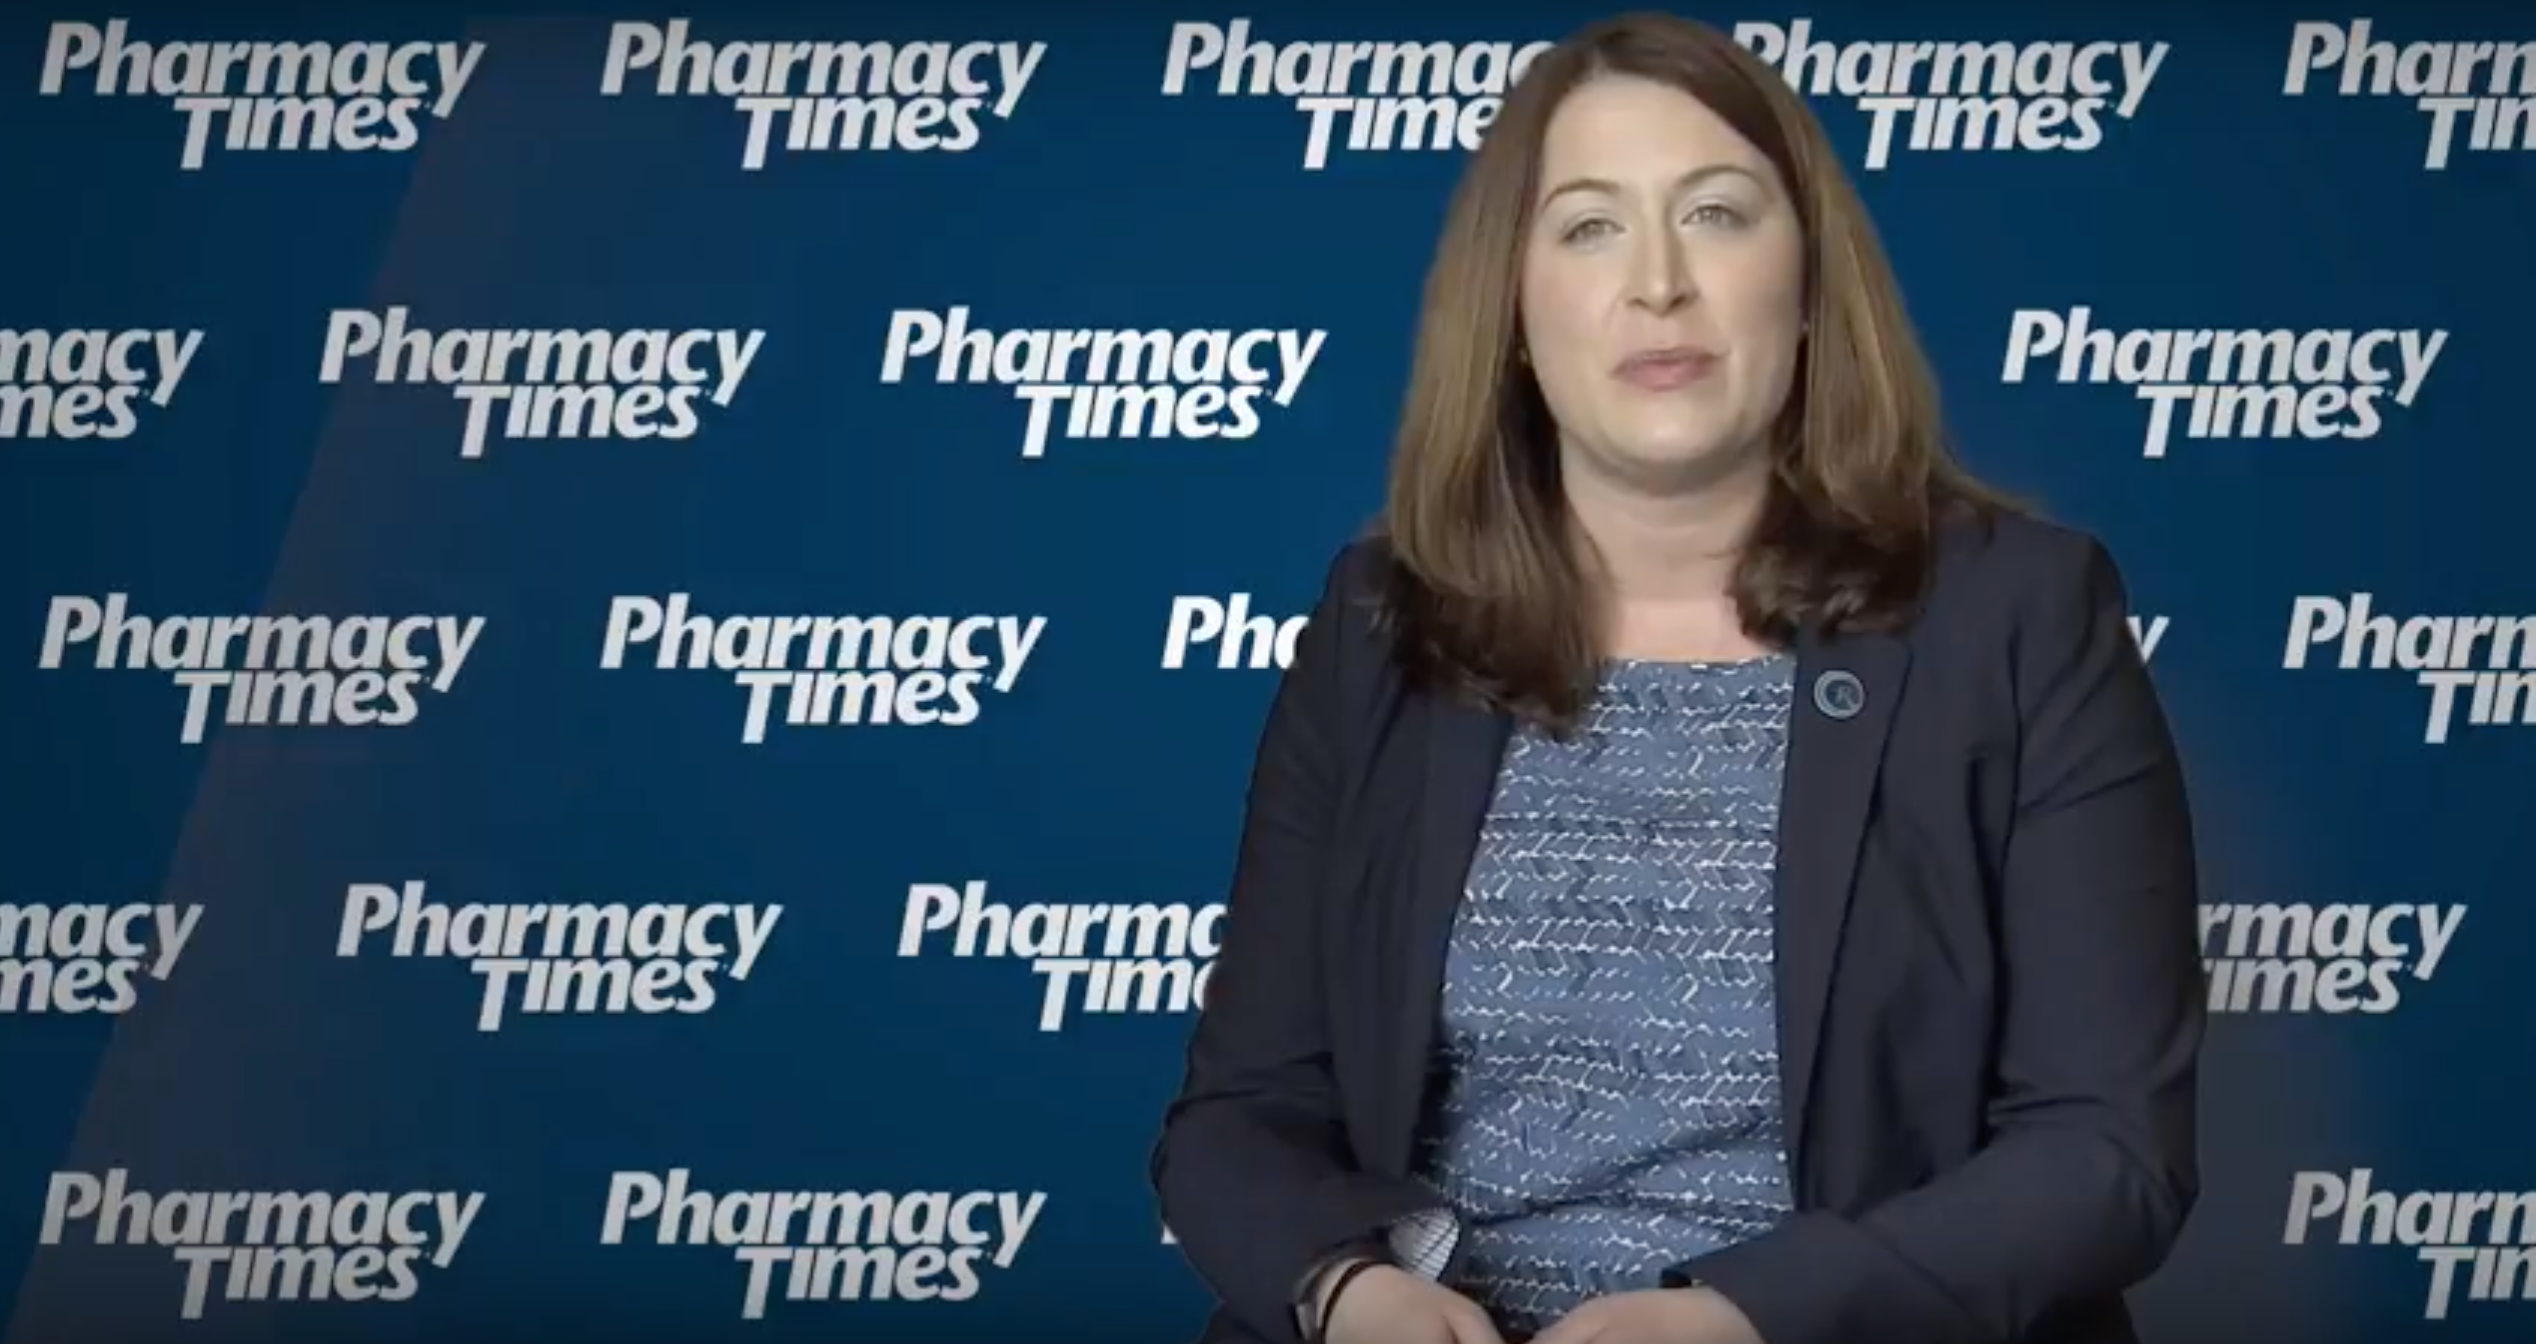 How Can Pharmacies Prepare for Value-Based Health Systems?